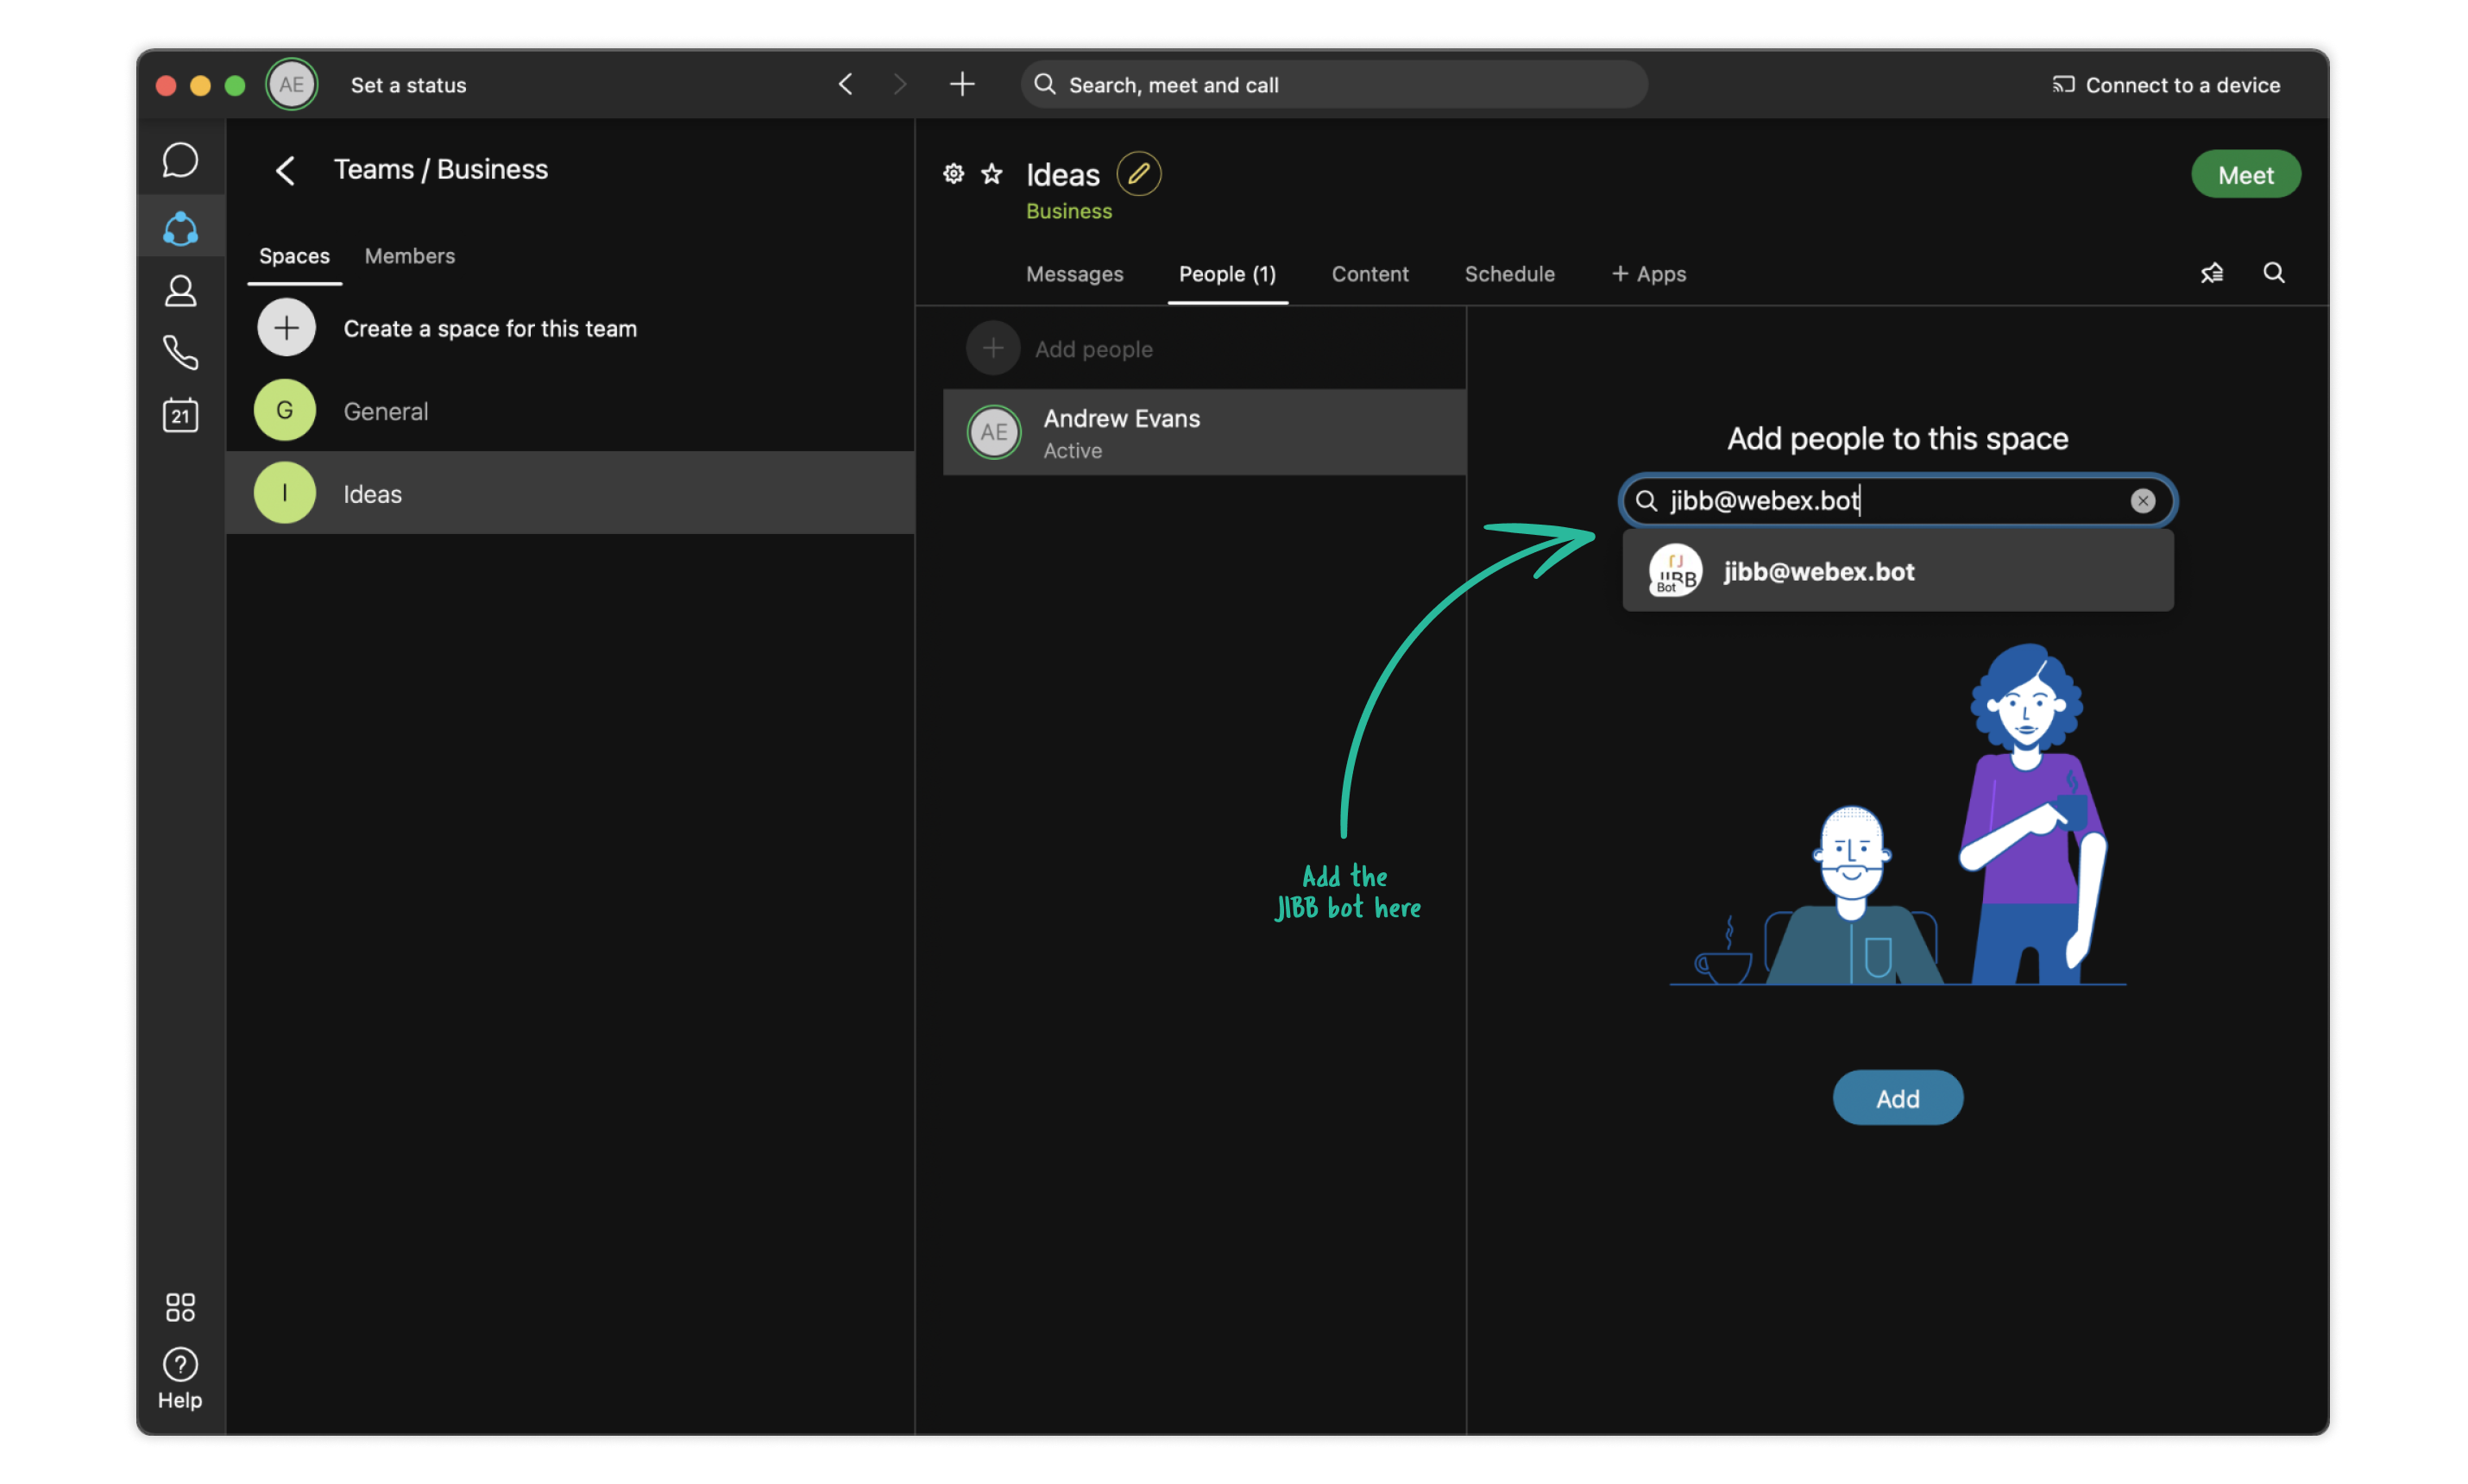 JIBB bot to a Webex space